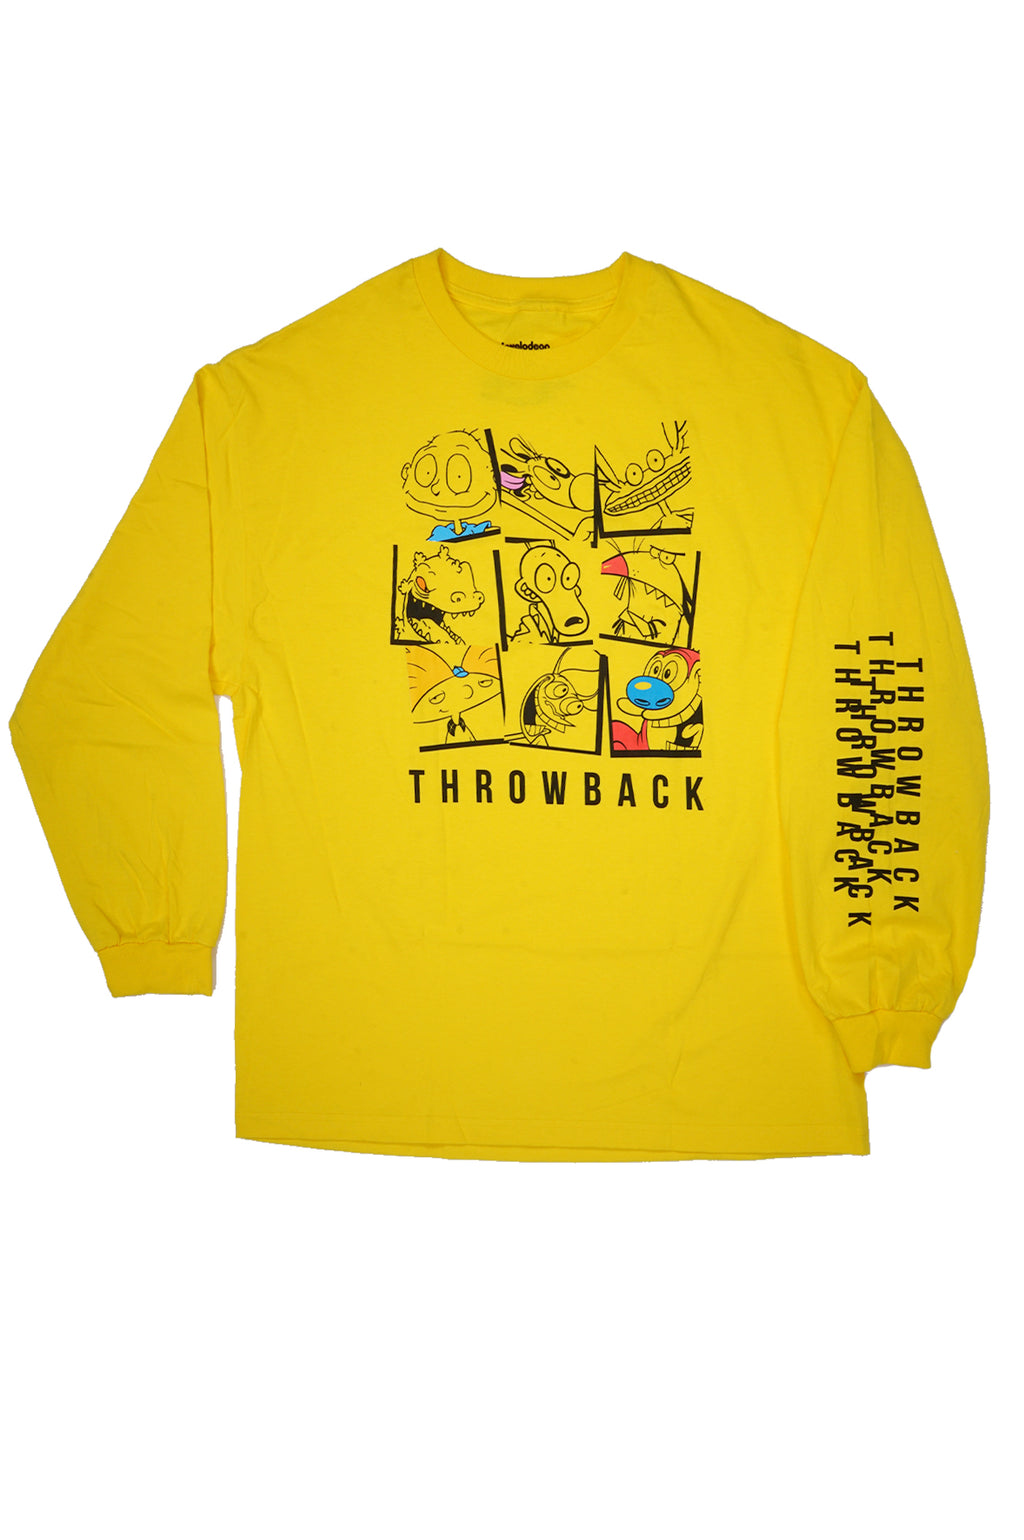 AAO FASHION MENS L/S NICKELODEON=NICK THROWBACK TEE